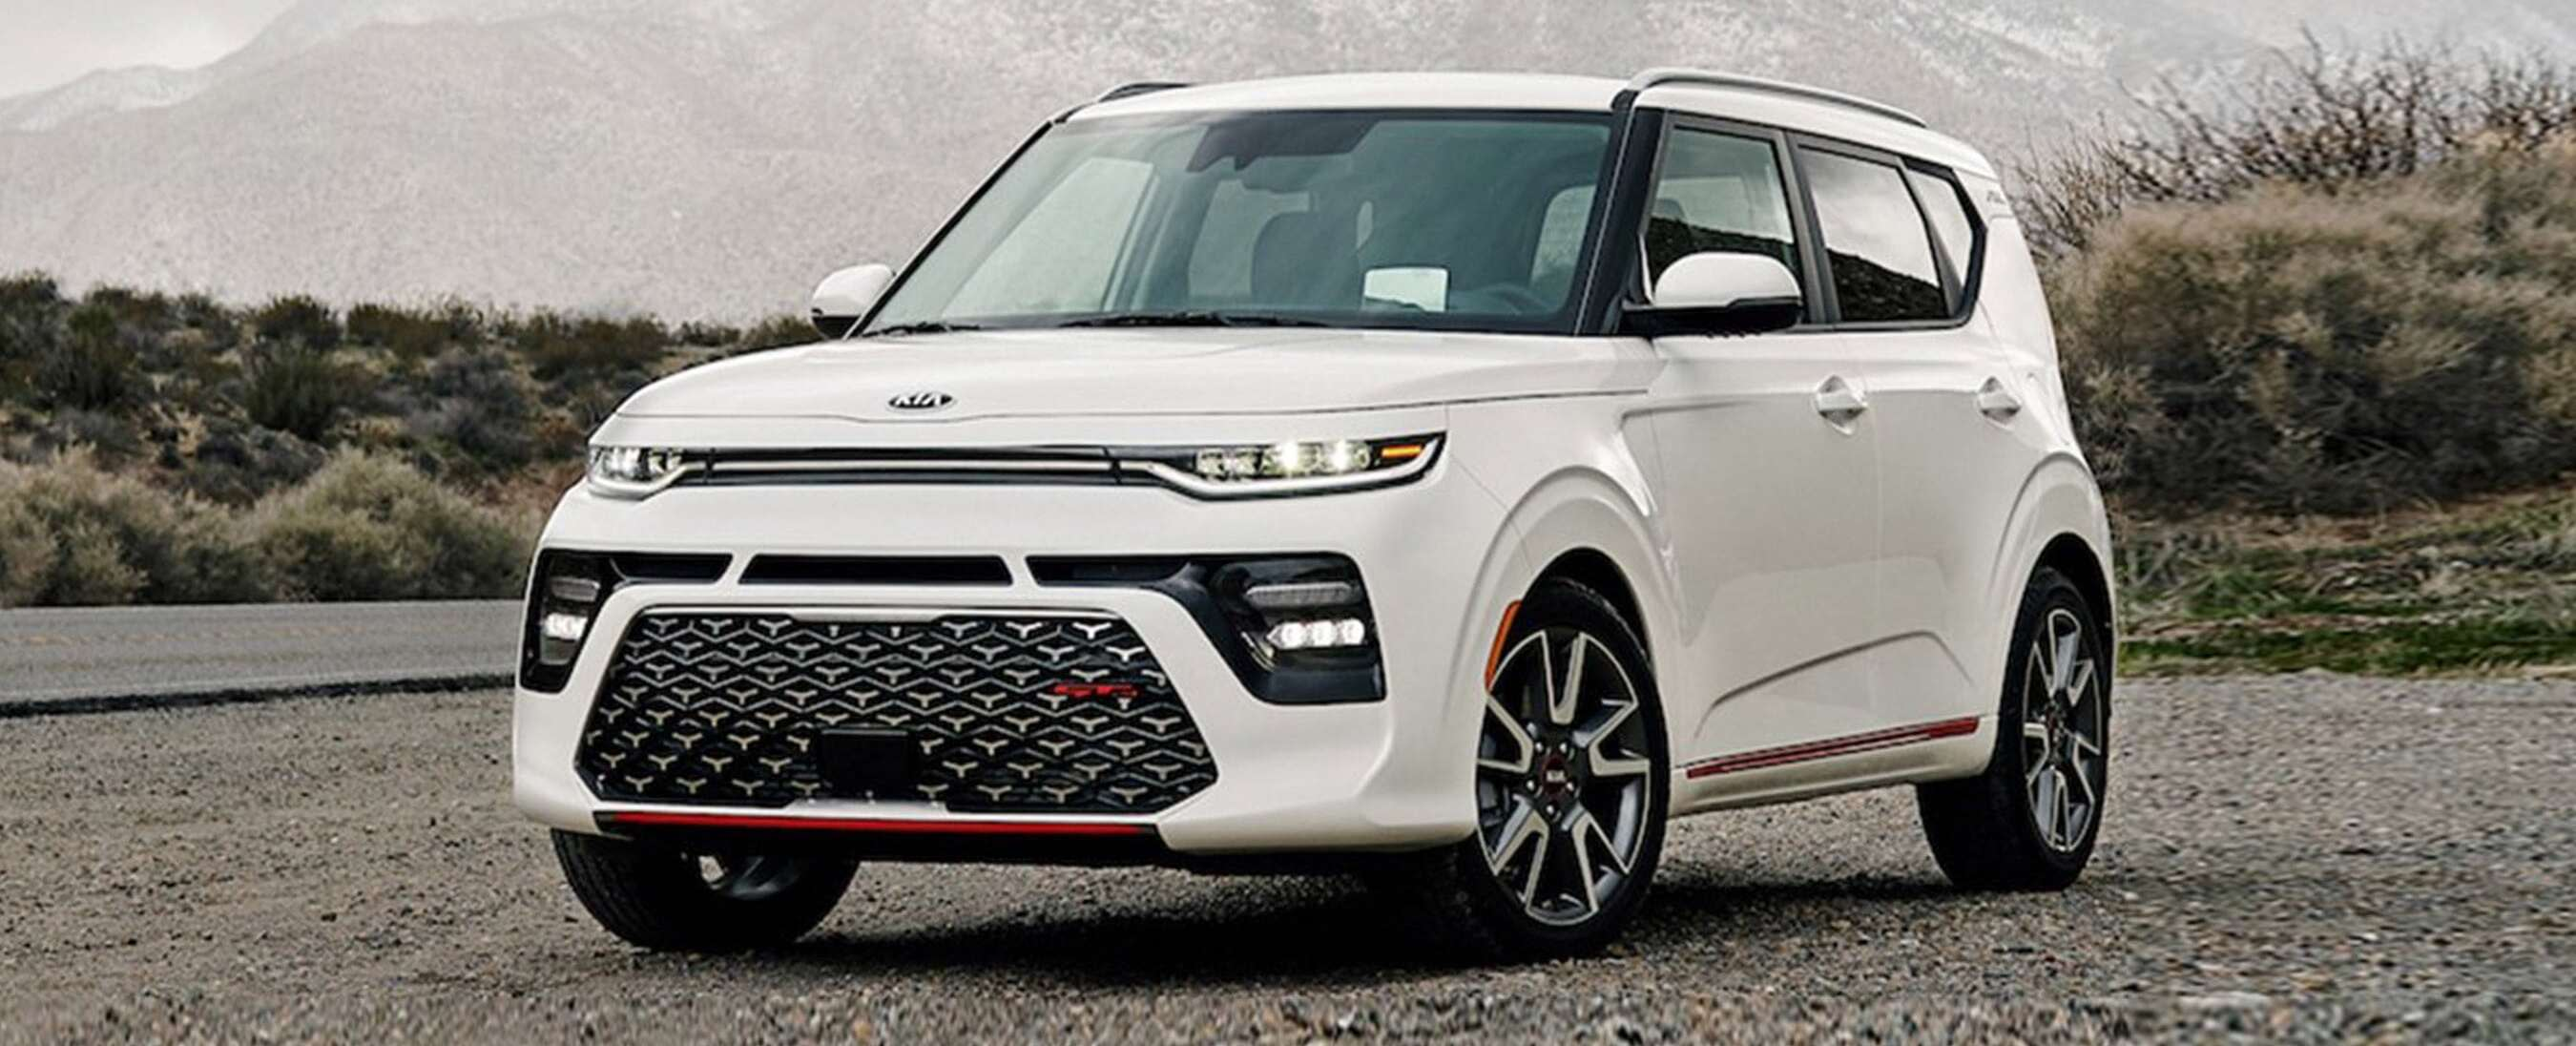 2020 Kia Soul Key Features near Crossville, TN